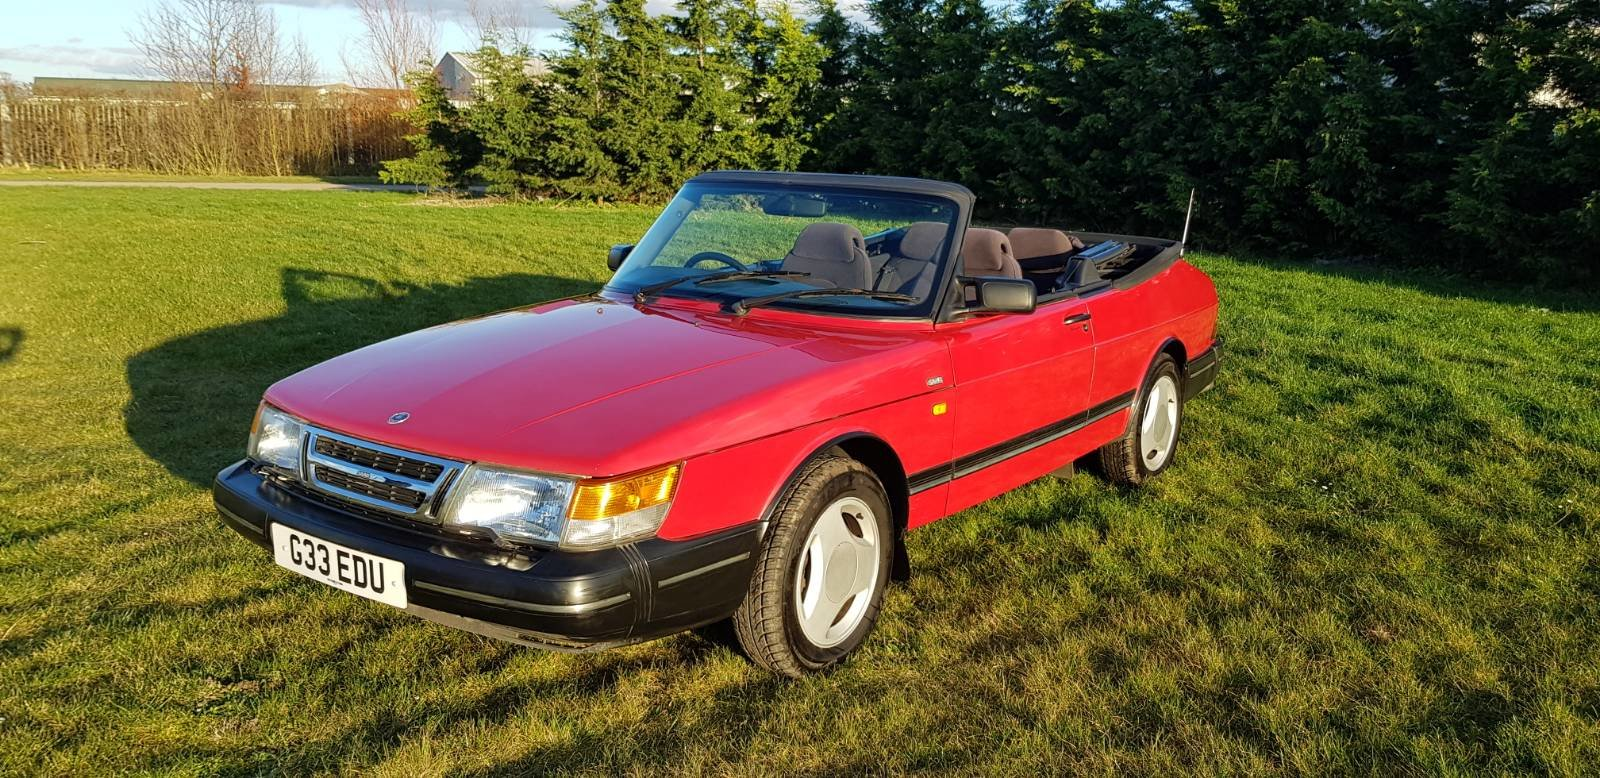 1990 Saab 900i 16v Convertible 87k miles - immaculate For Sale (picture 6 of 9)